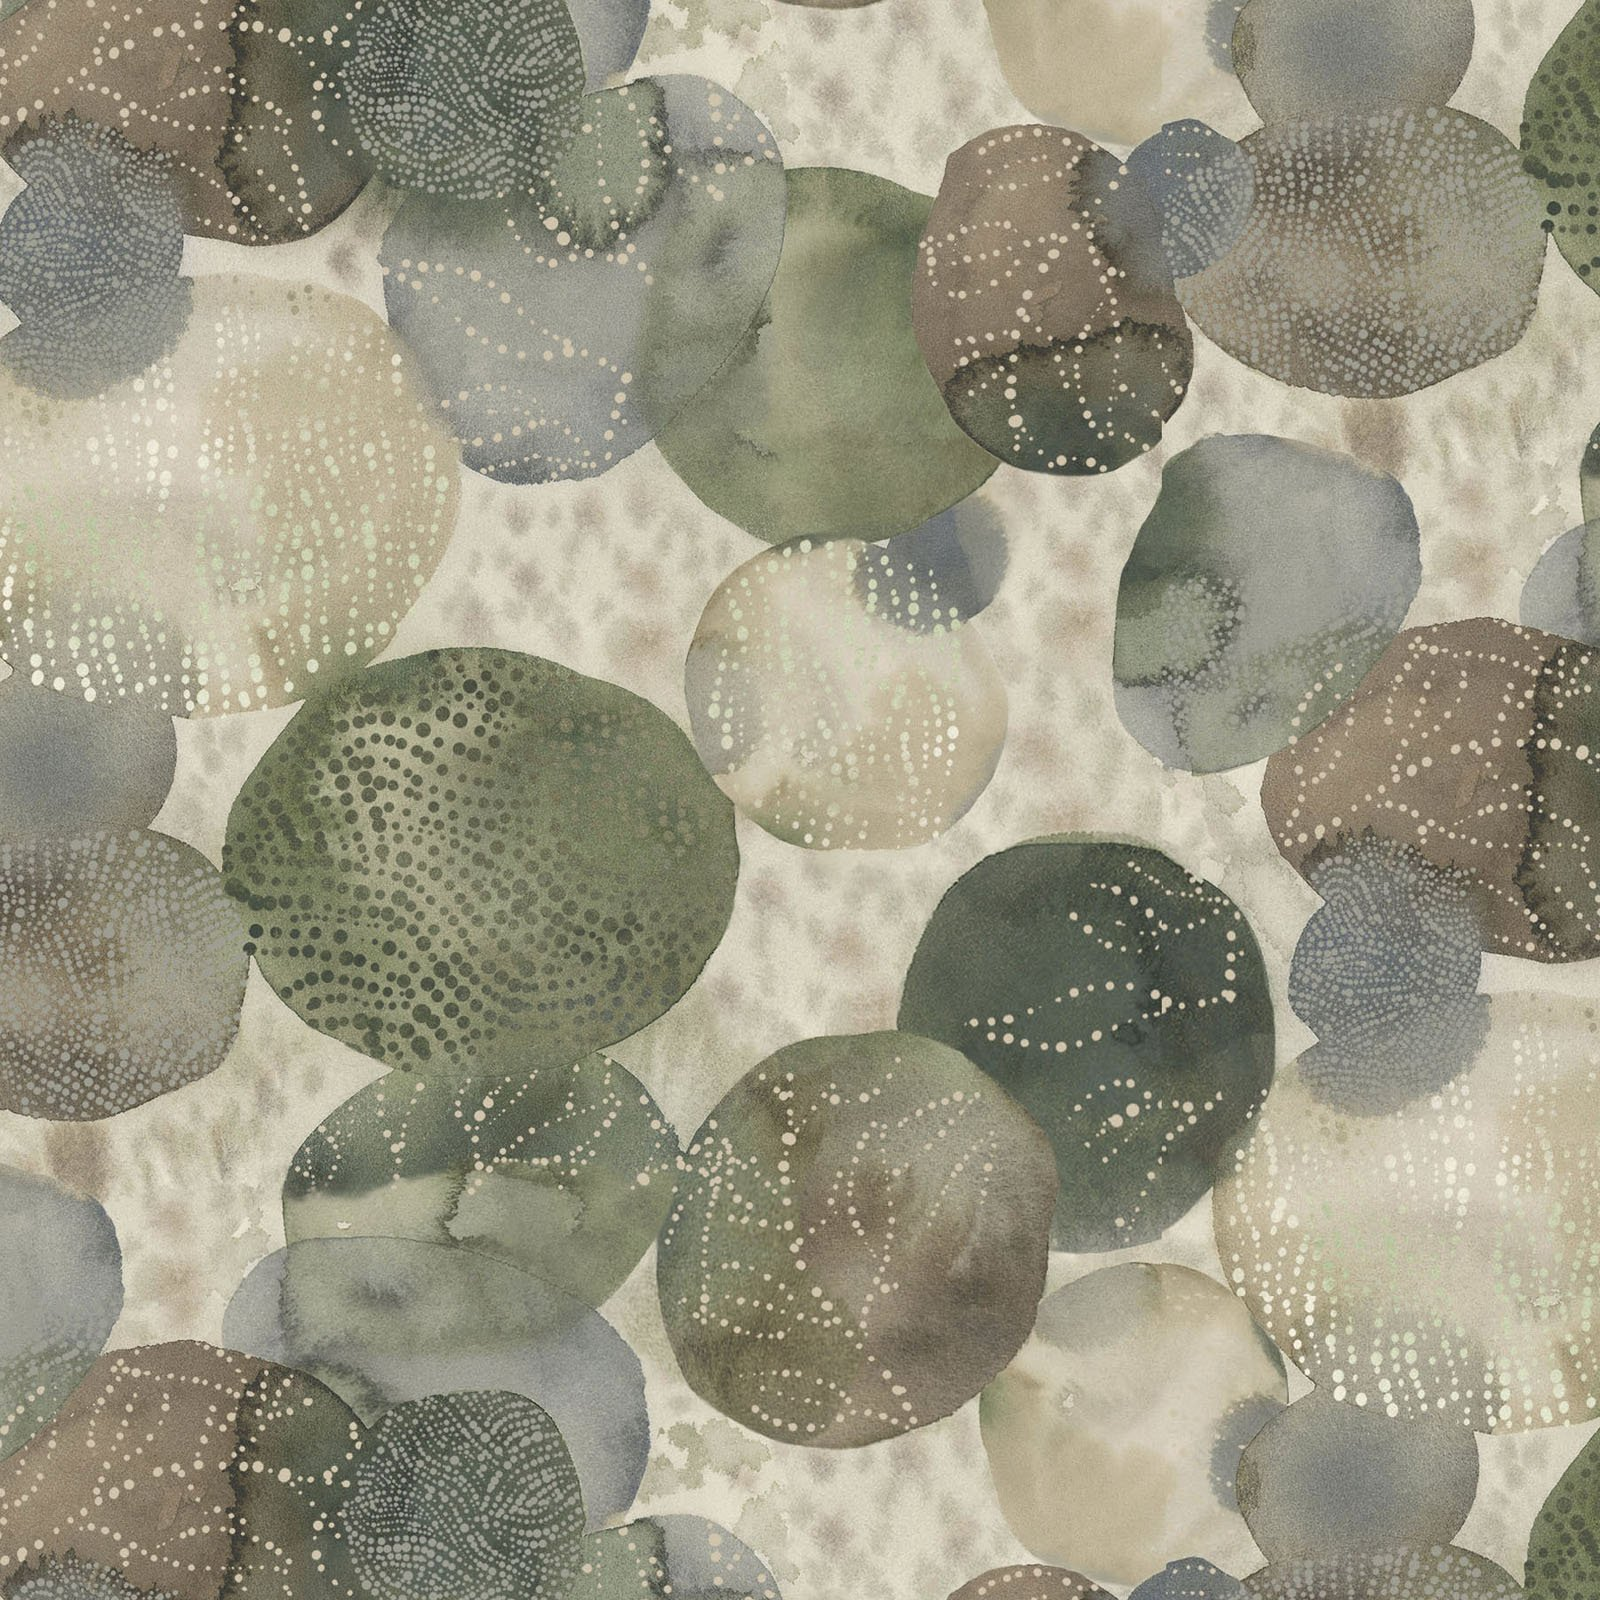 FRET-4336 MU - FOREST RETREAT BY JETTY HOME TEXTURE STONES MULTI